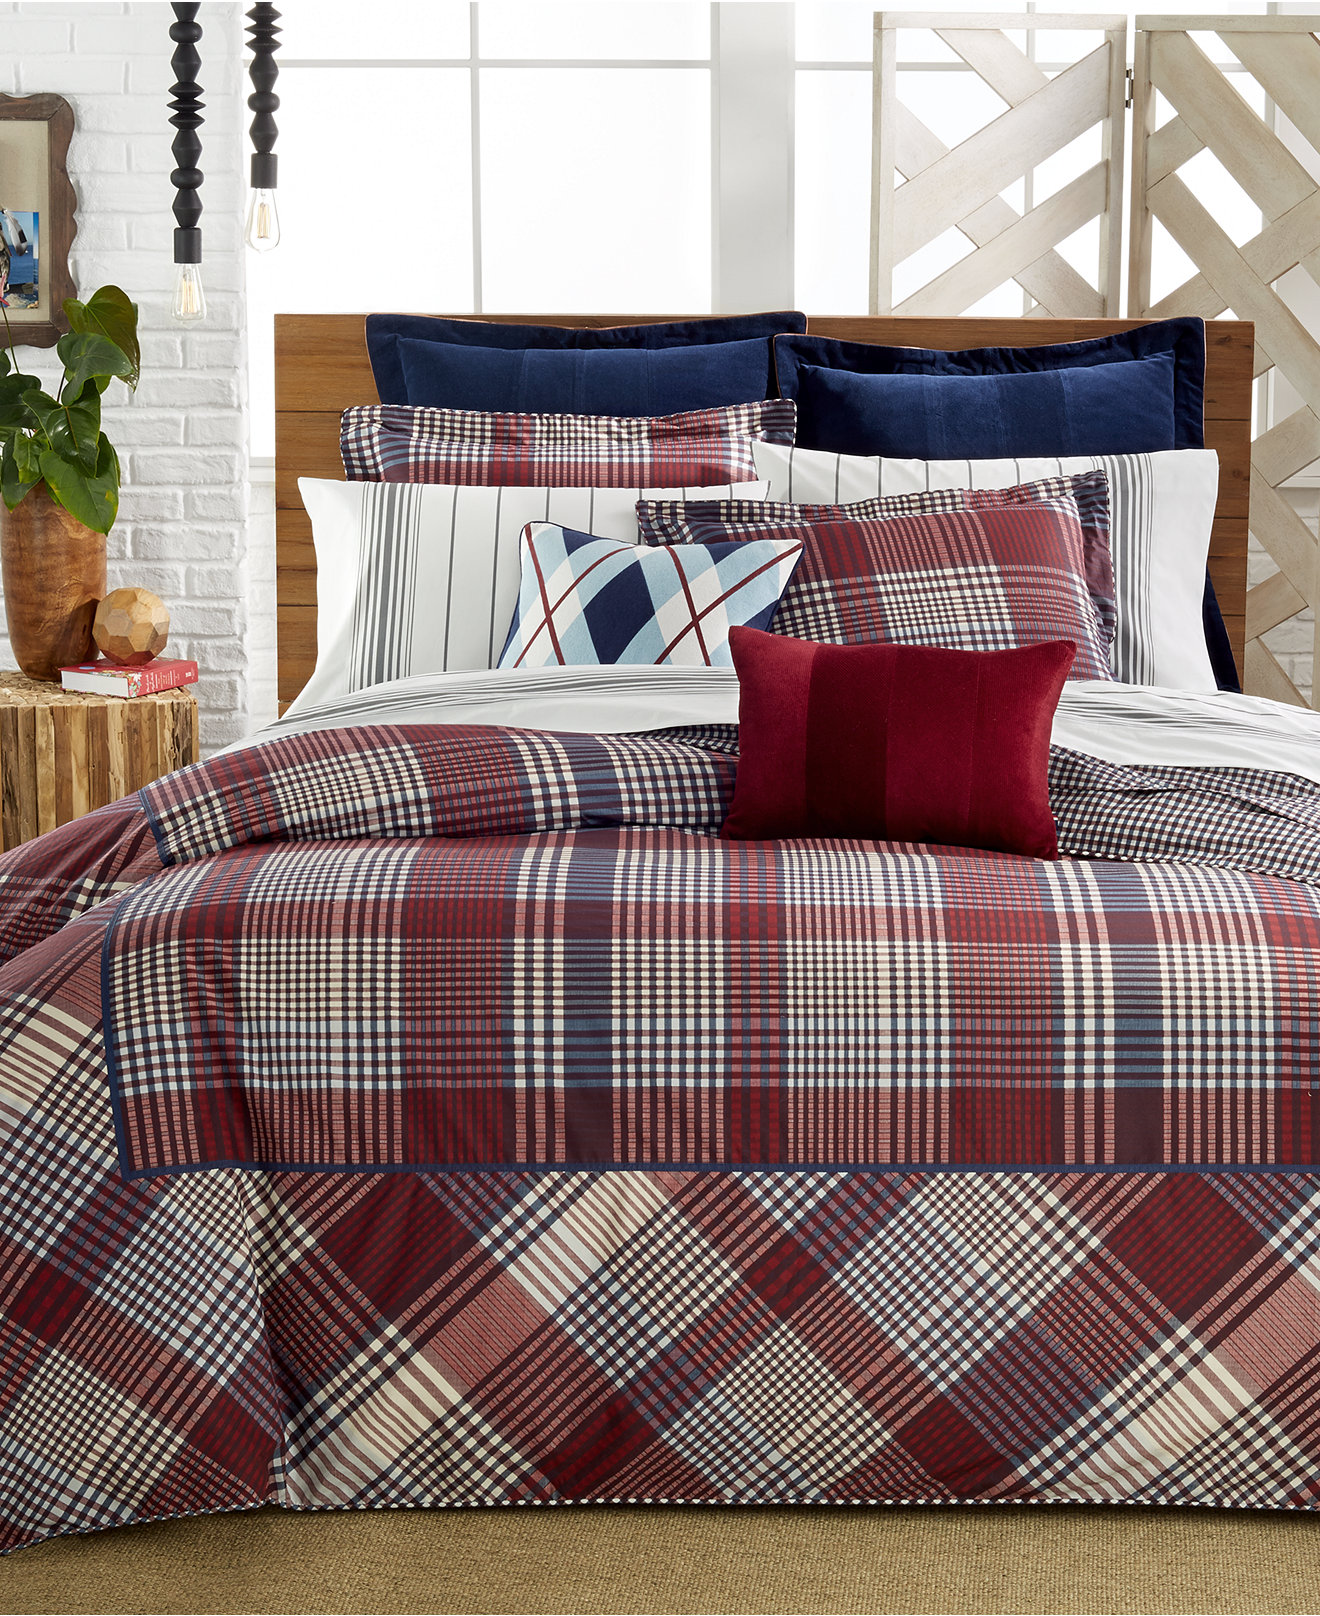 Red and brown plaid bedding - Tommy Hilfiger Buckaroo Plaid Bedding Collection Bedding Collections Bed Bath Macy S